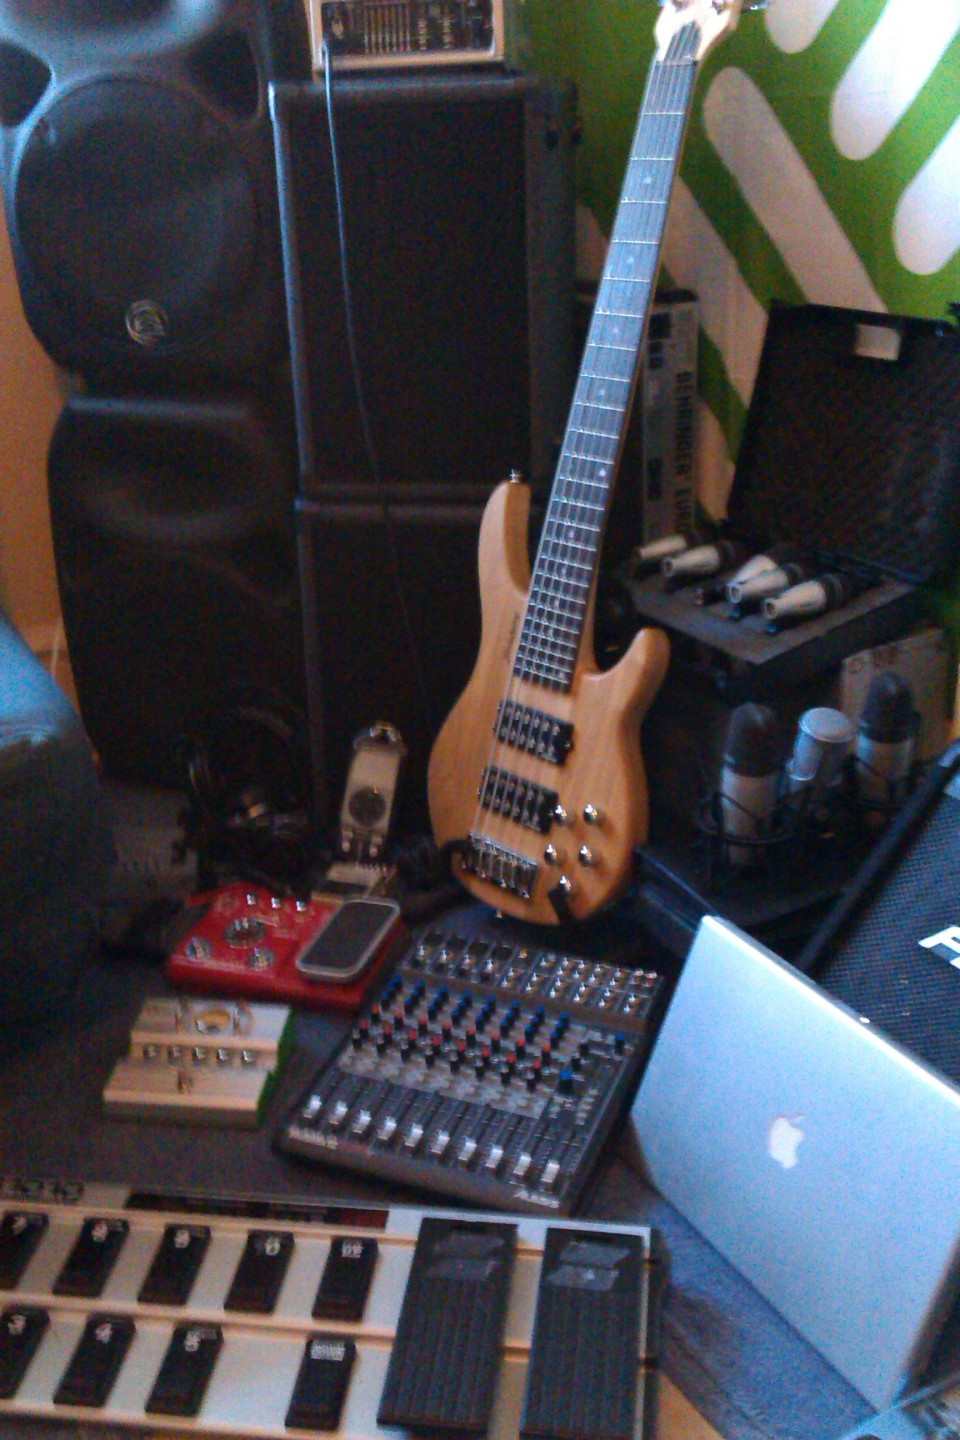 Some of the toys we like to use: Strindberg 6-String Behringer FCB1010 Zoom B2.1u Alesis MutliMix 12fw Ashodown Superfly 500 MacBook Pro Wharfdale Titan 12D(x2) Custom Cabs 110(x2) Ashodown Dual-Band Compressor Mics (assorted)